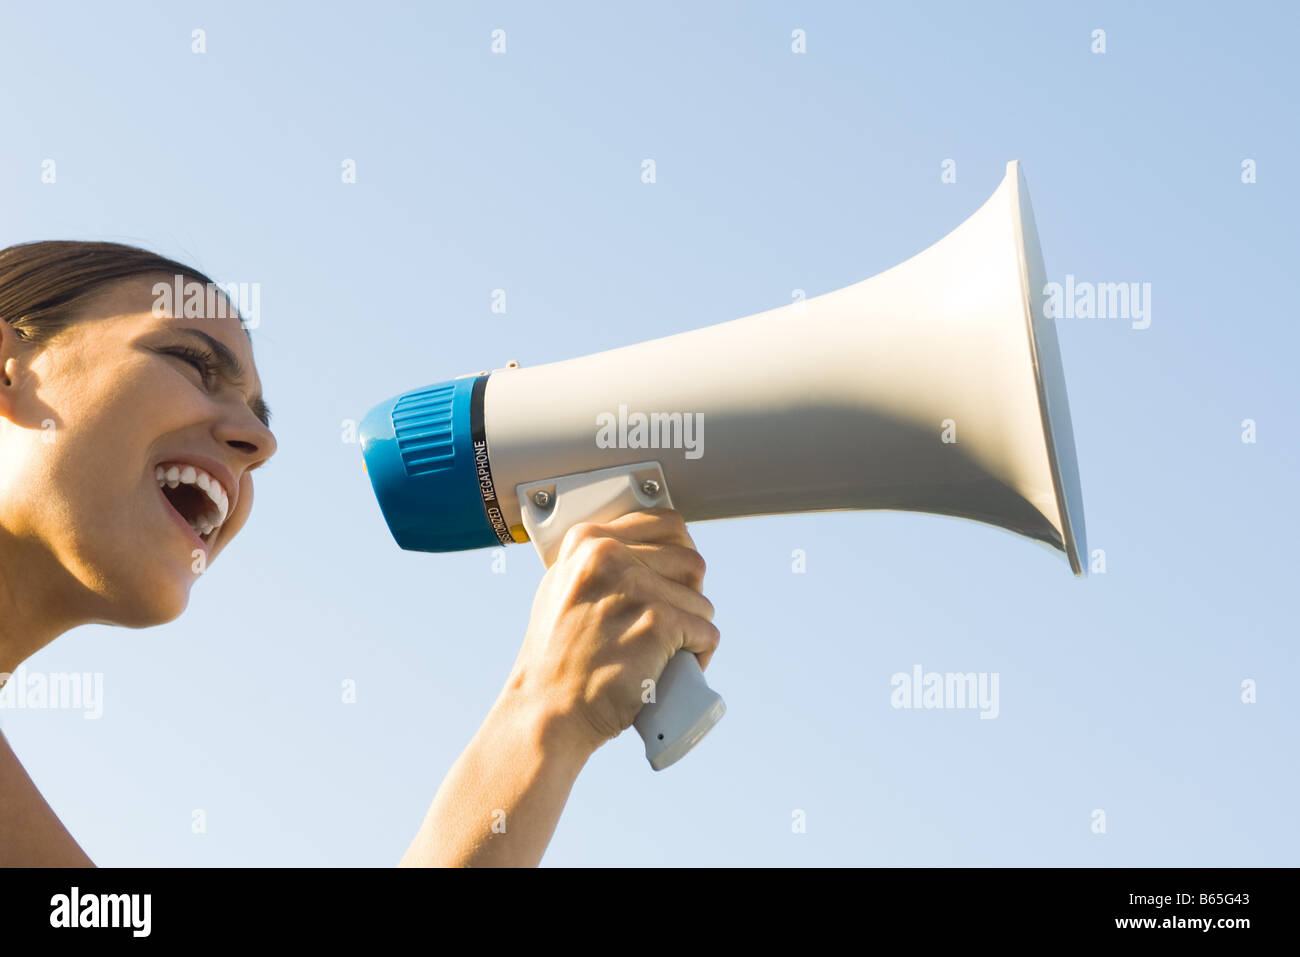 Woman shouting into megaphone, low angle view, cropped - Stock Image